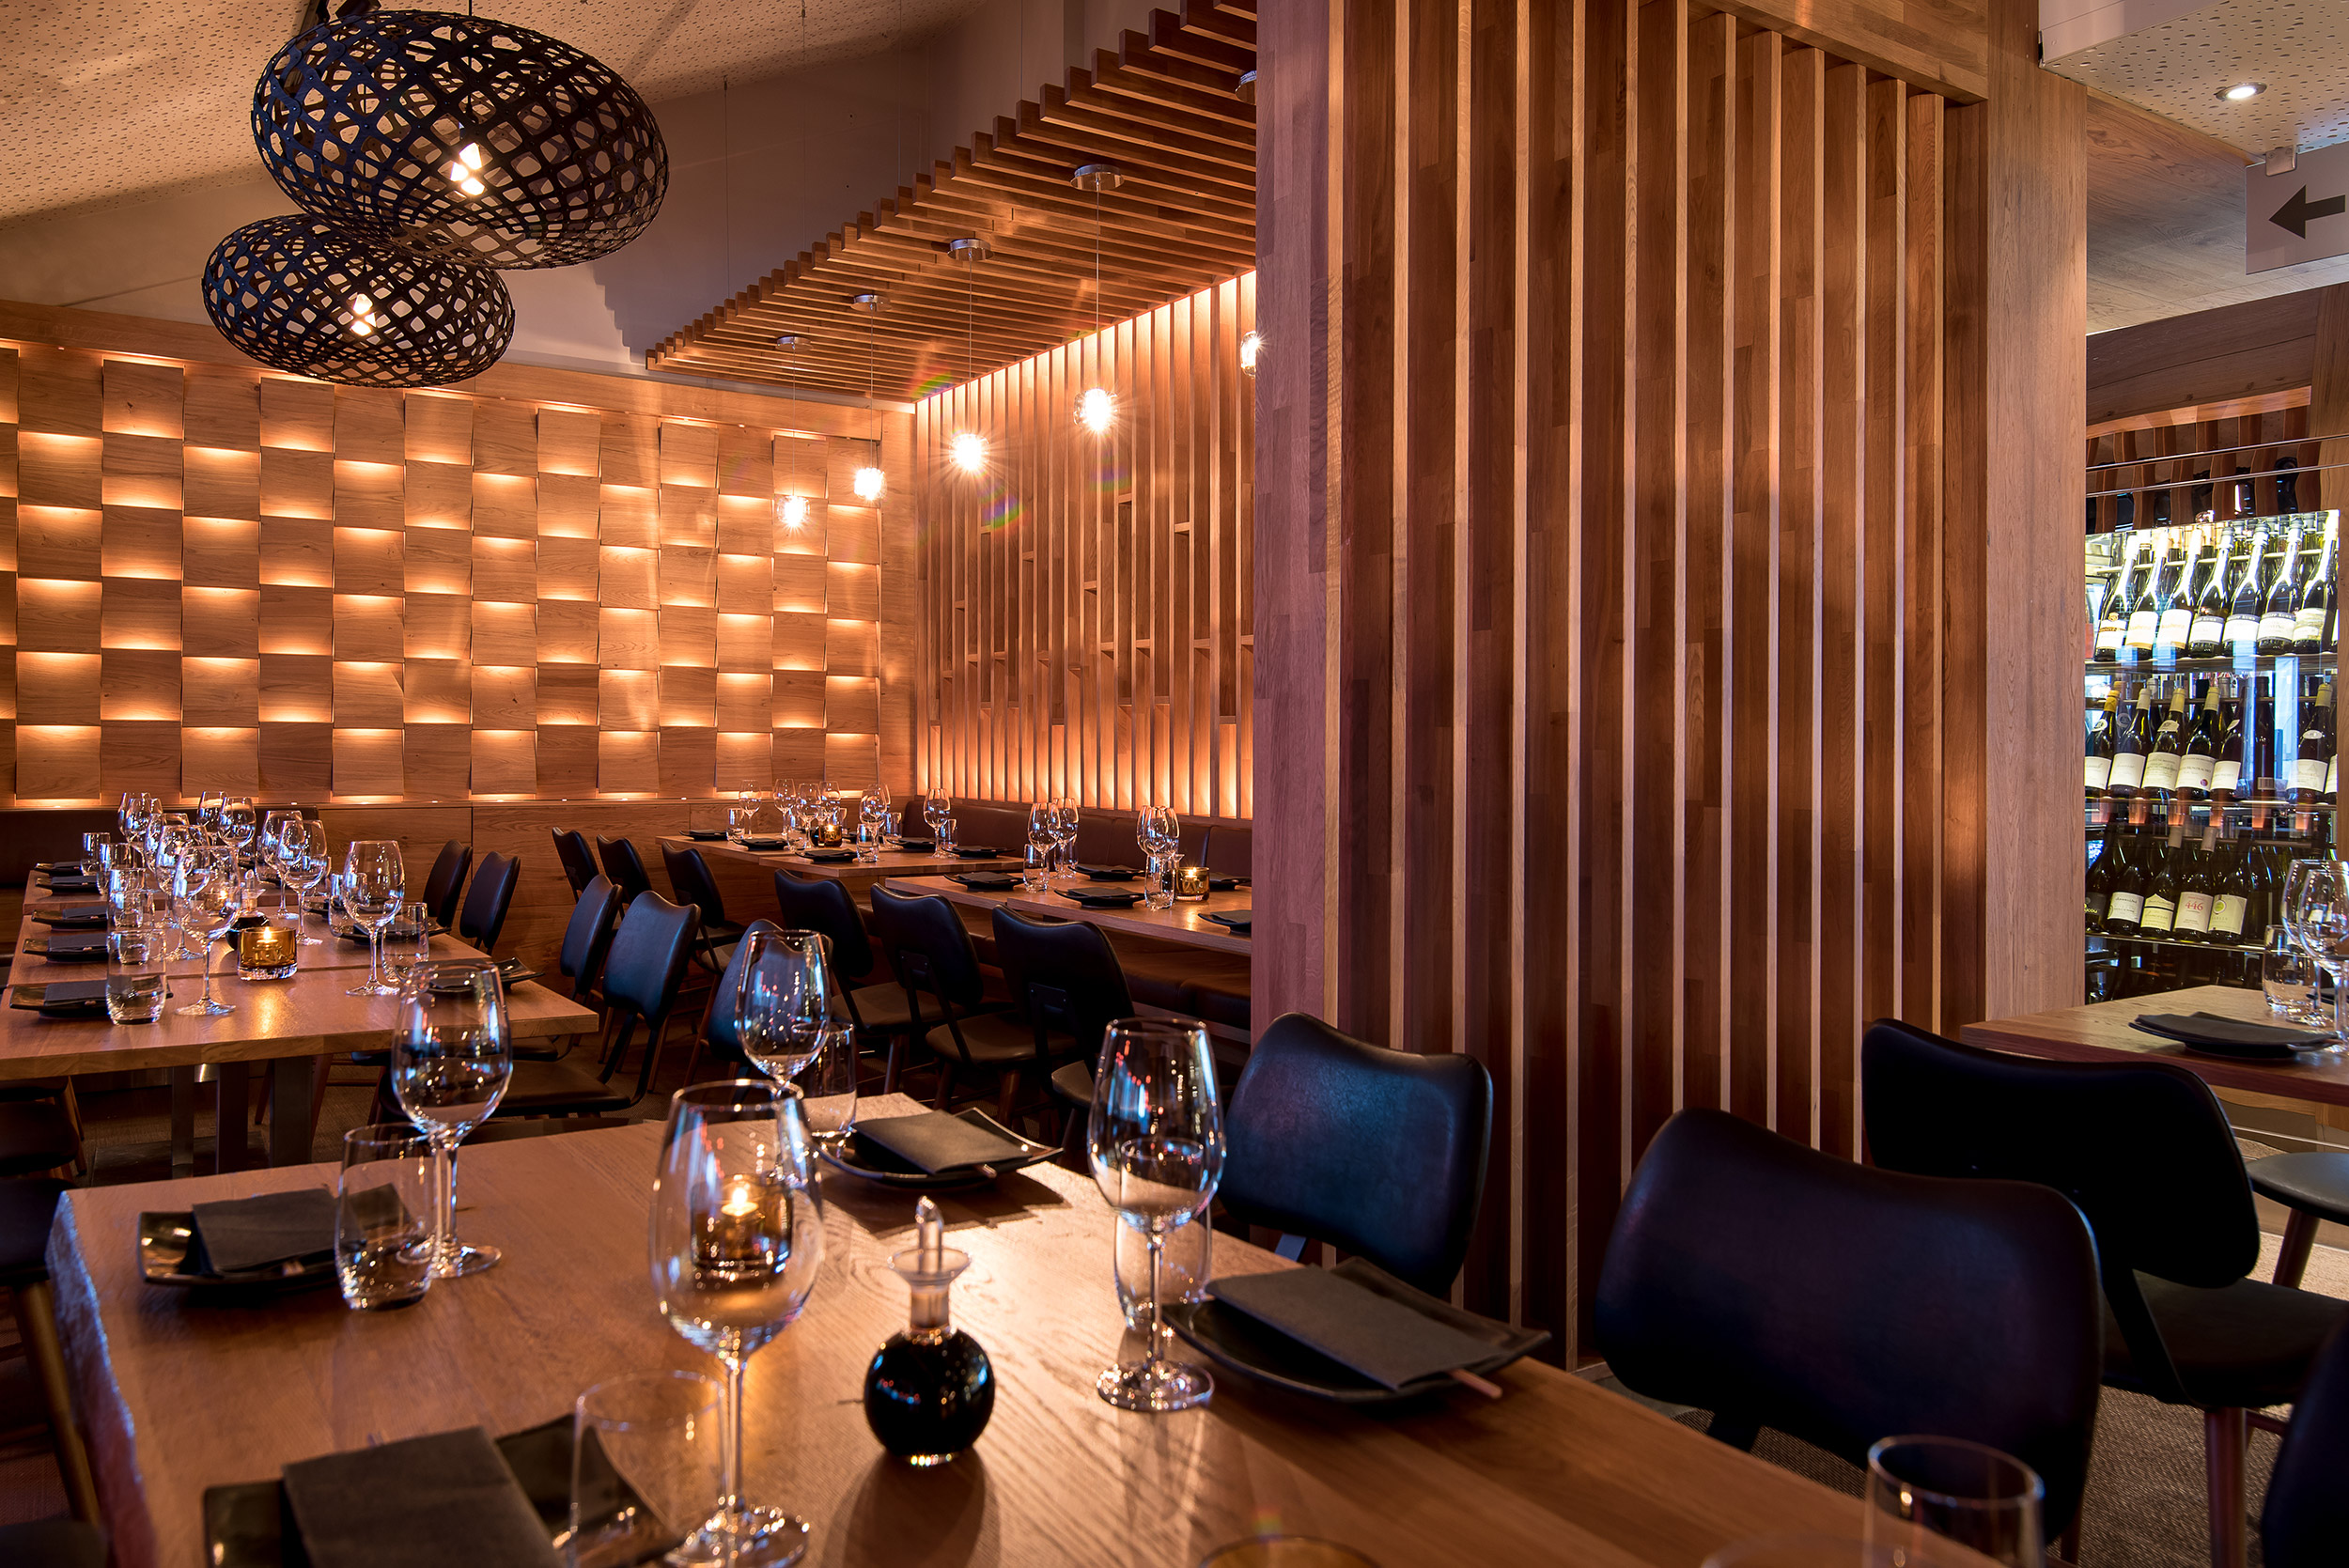 Dinner party at Hinoki?